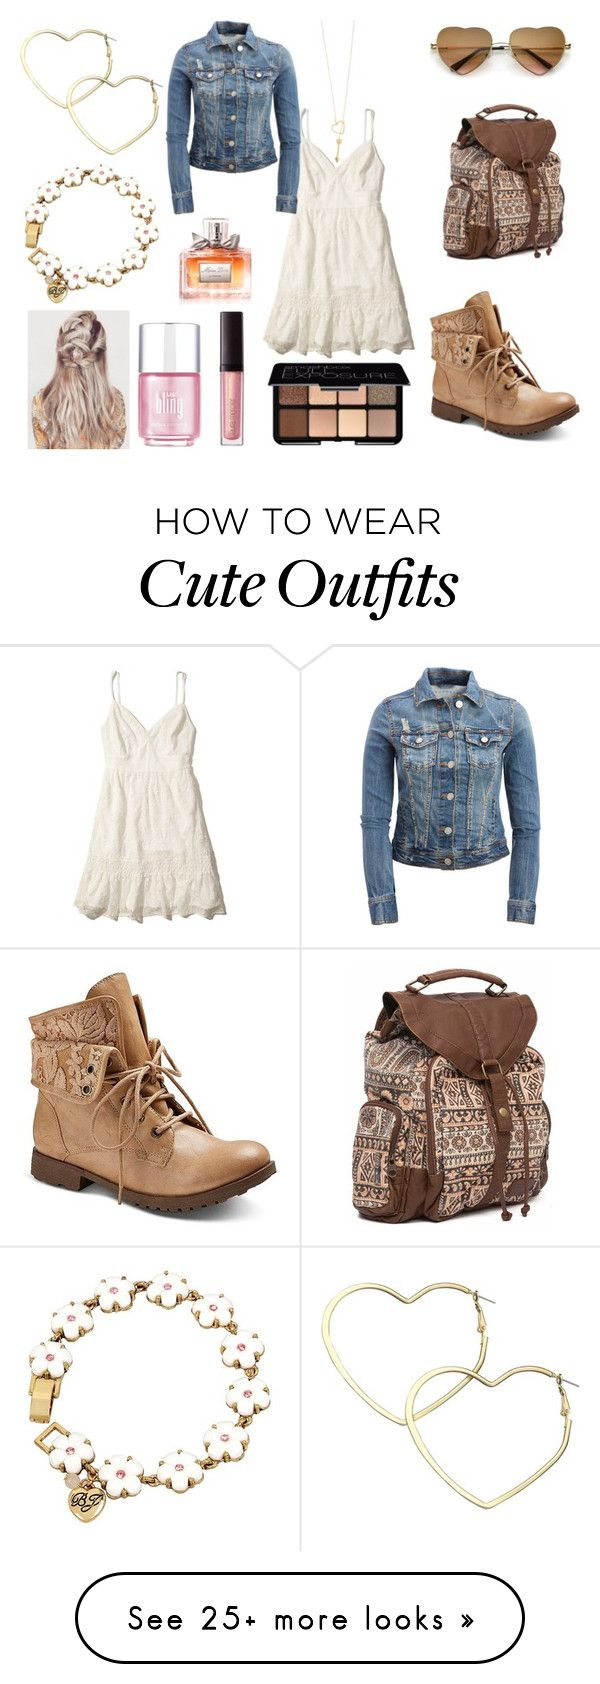 """""""Cute Girly Outfit"""" by holly32196-1 on Polyvore featuring Hollister Co., Z London, Aéropostale, Billabong, Accessorize, Thalia Sodi, Betsey Johnson, Laura Mercier, Smashbox and Christian Dior"""